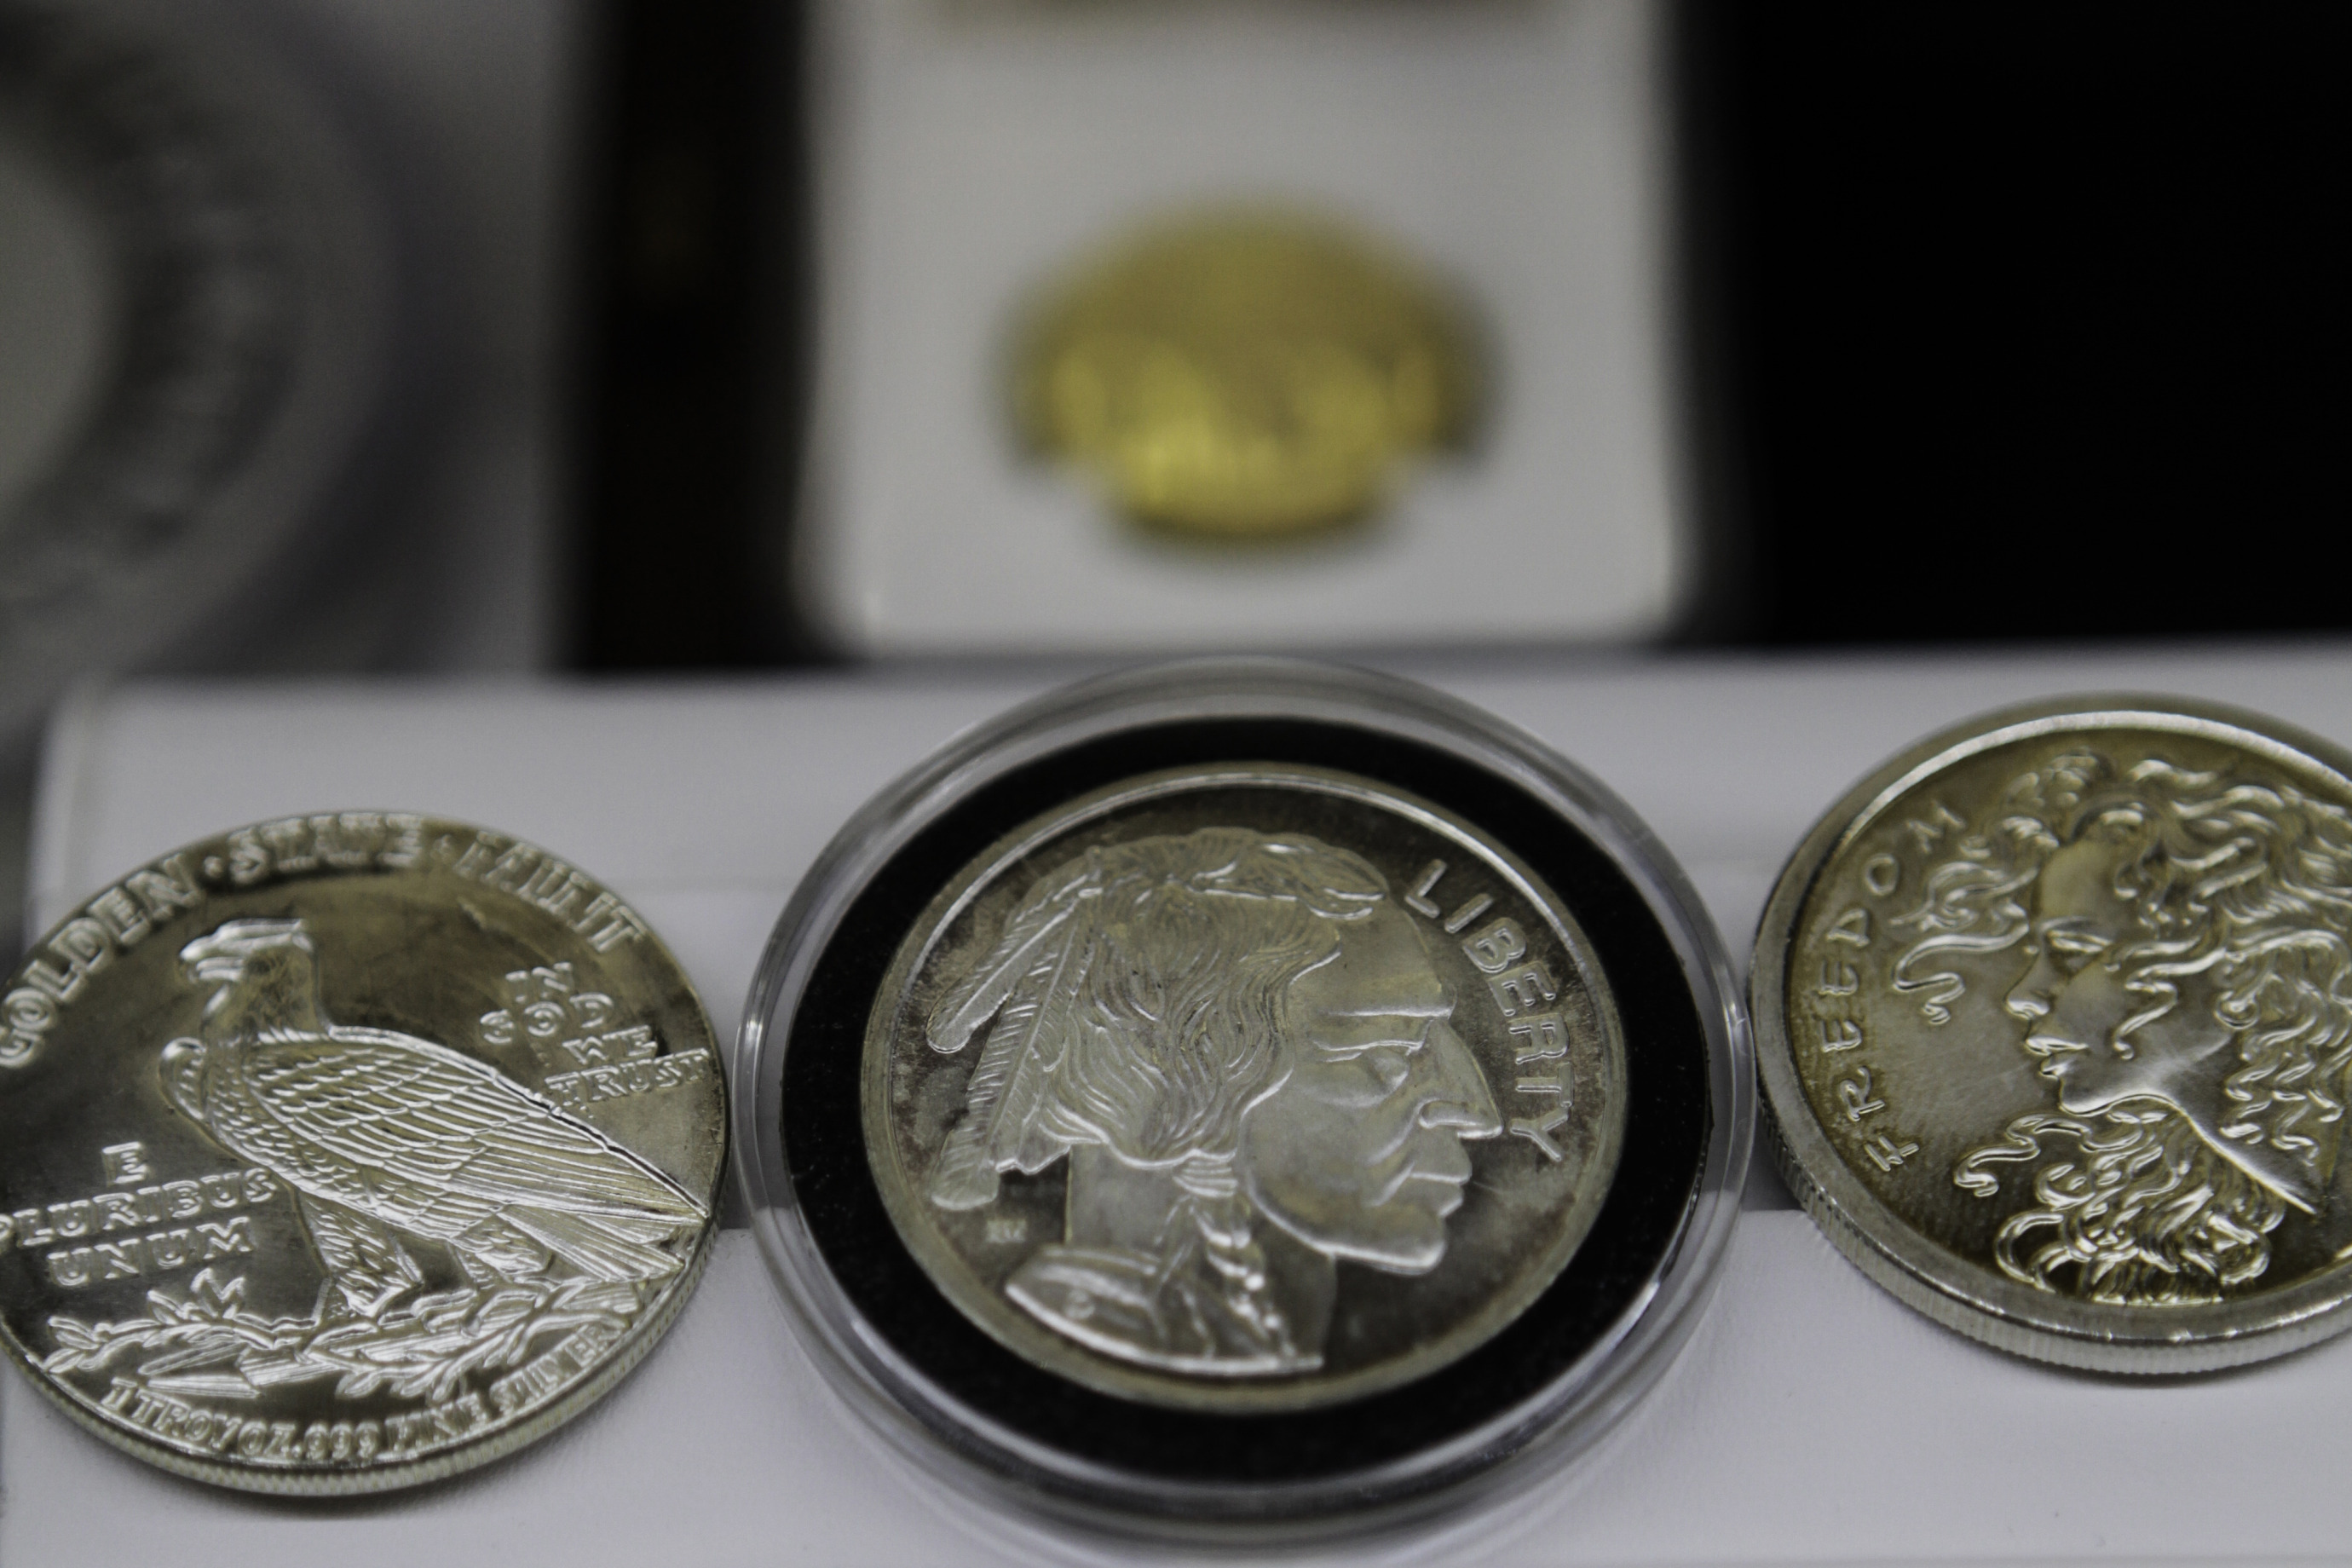 Rare coins are photographed in the Bullion Trading LLC. offices in New York, NY, U.S., on Wednesday, June 10, 2015